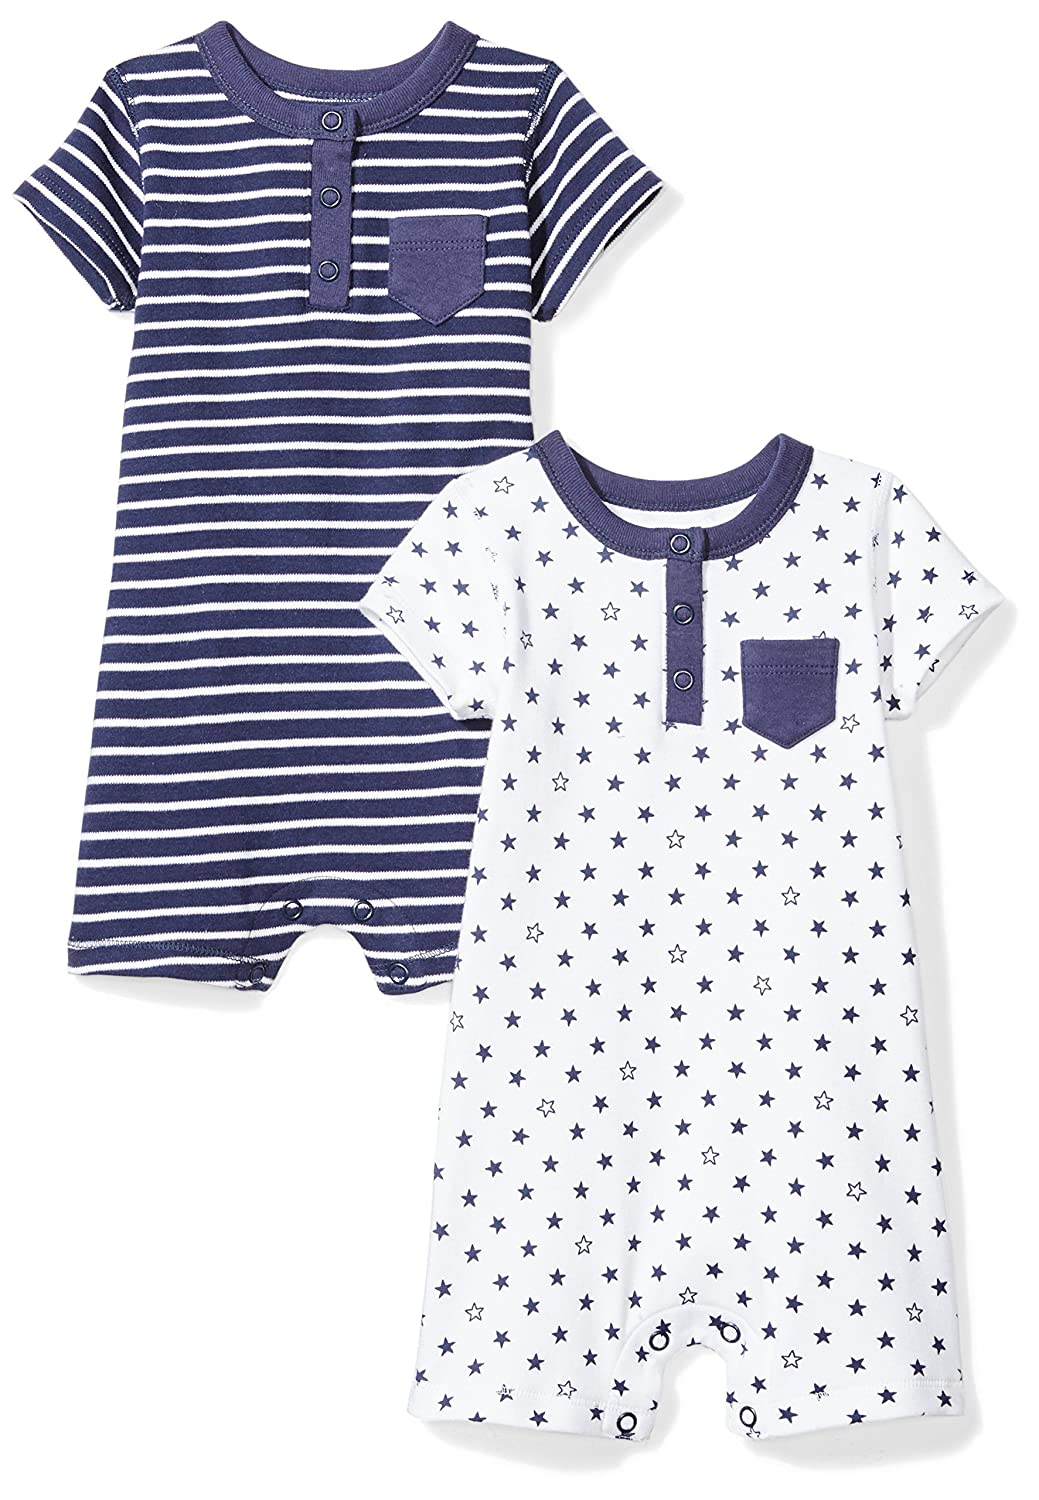 Moon and Back Baby Set of 2 Organic Rompers BSR11-2PK-SSSA